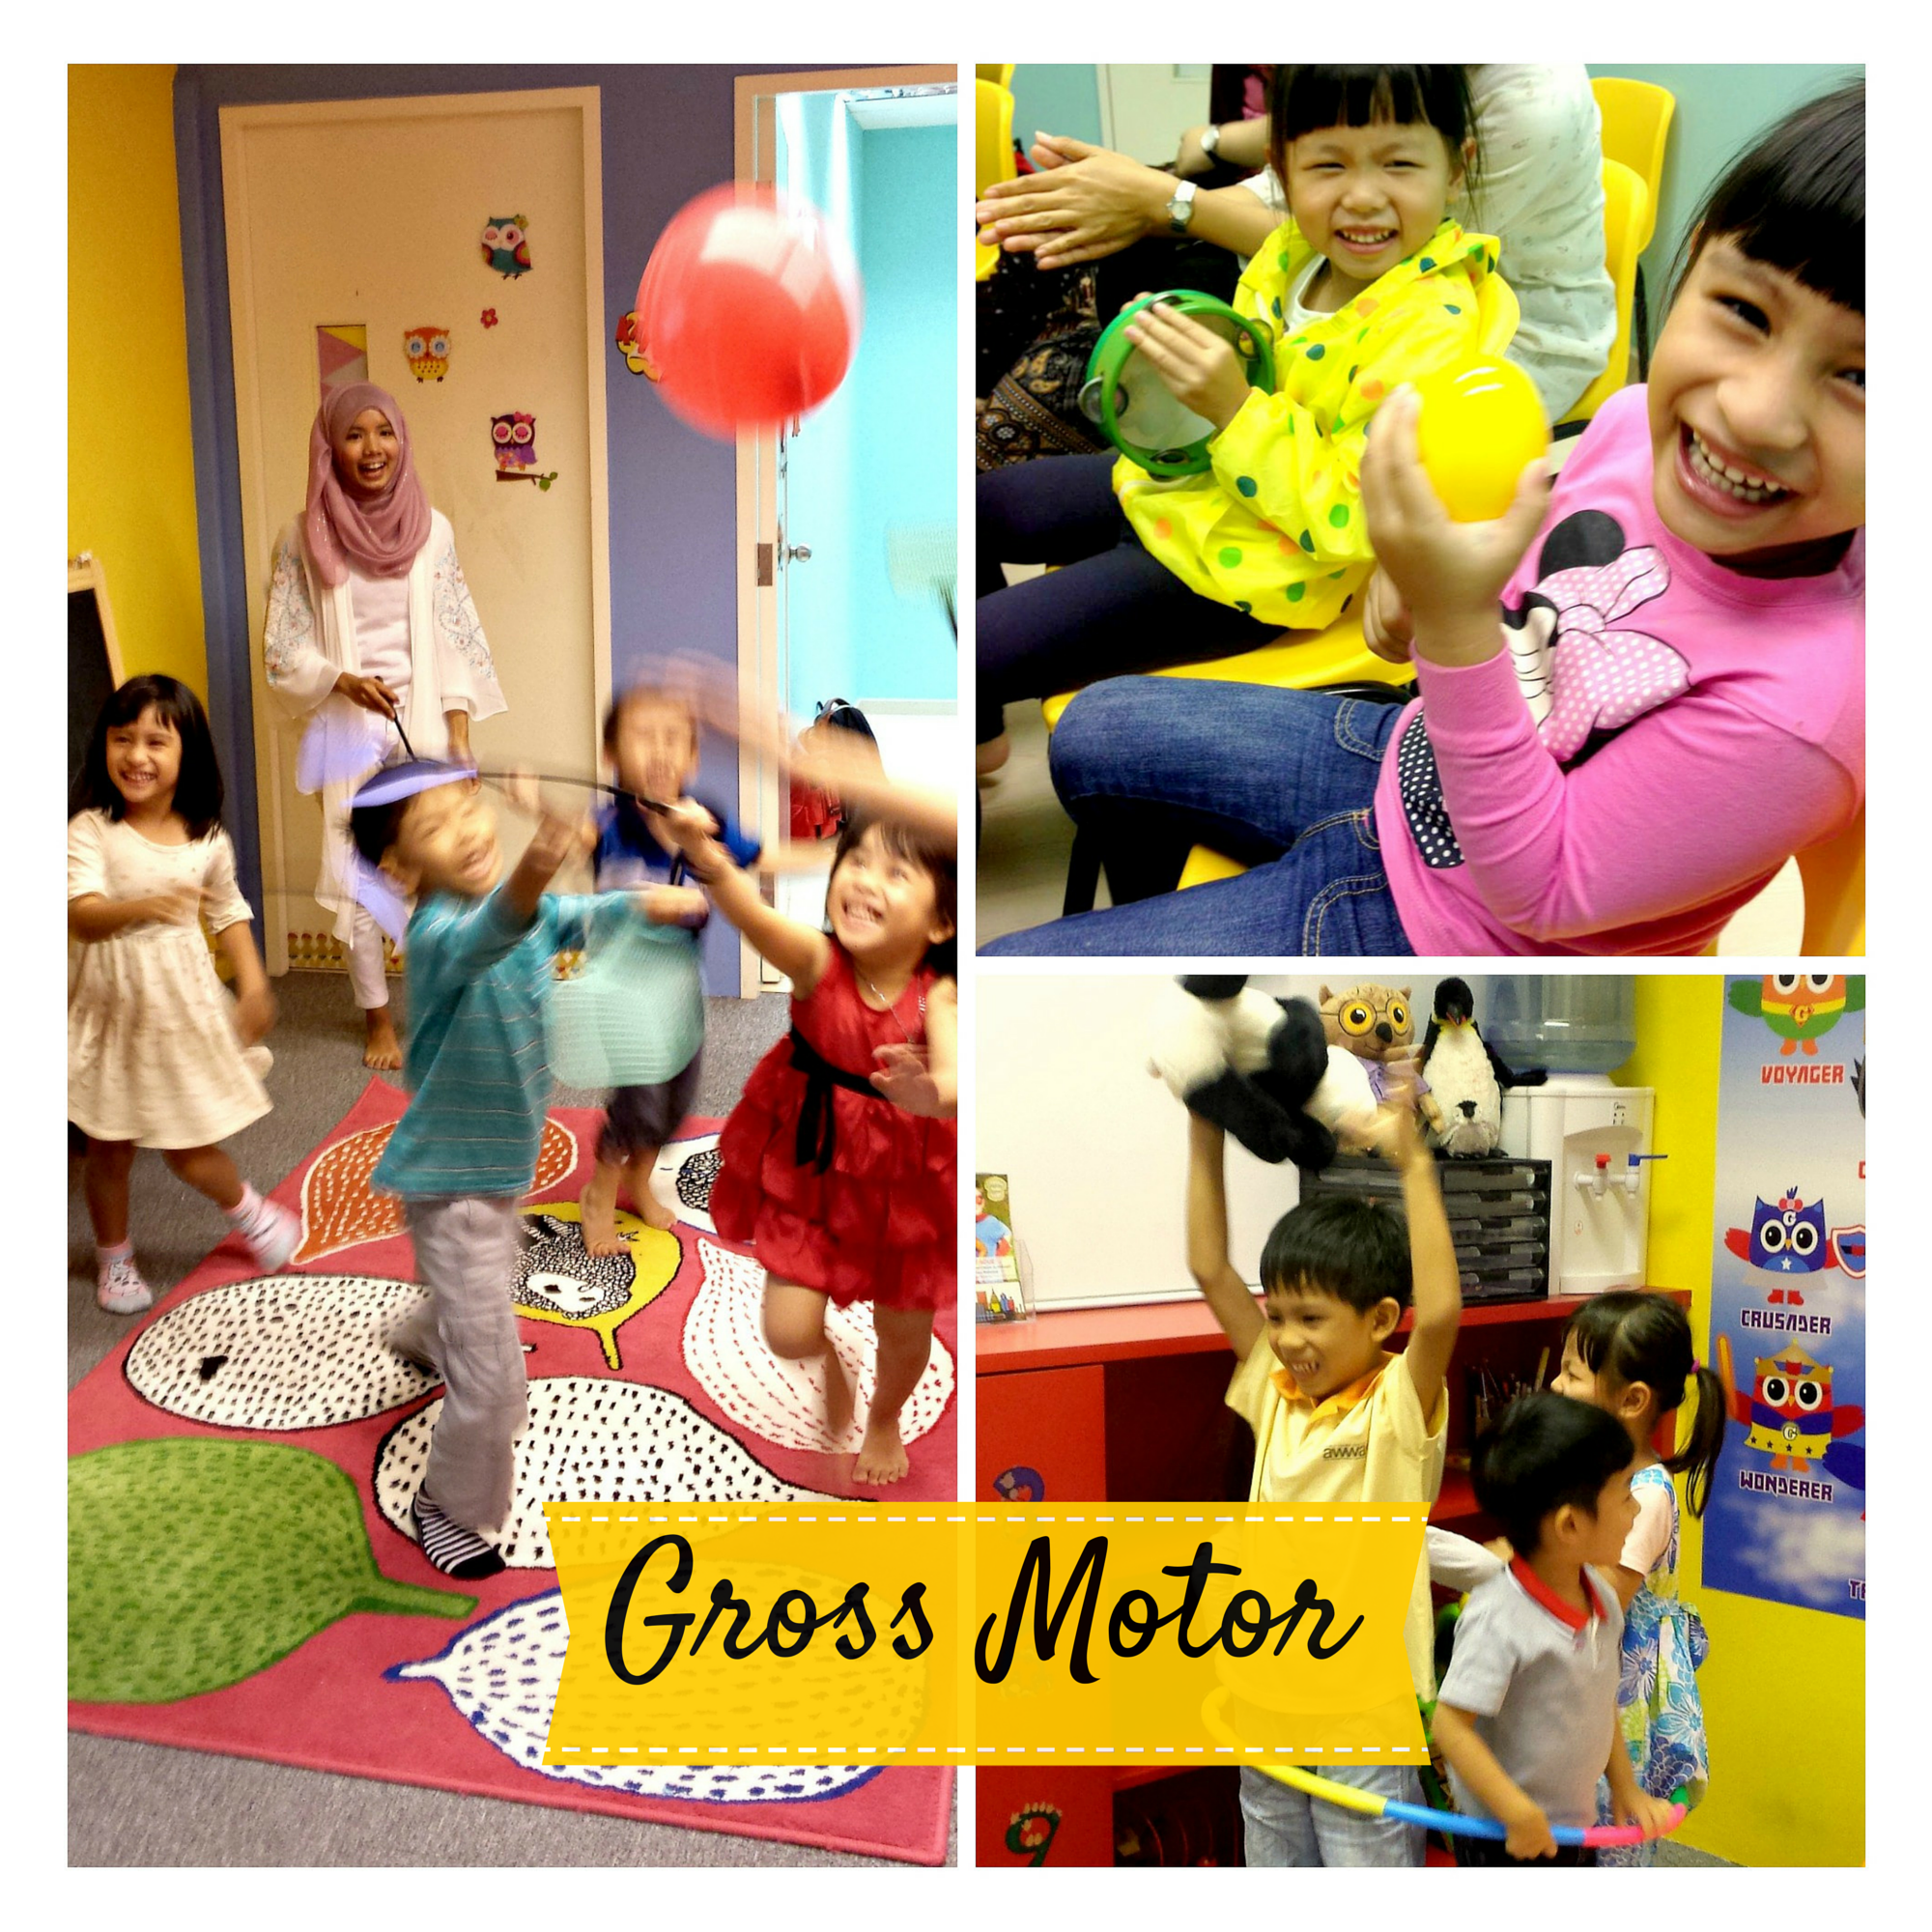 Gross Motor (4 to 6 years old)